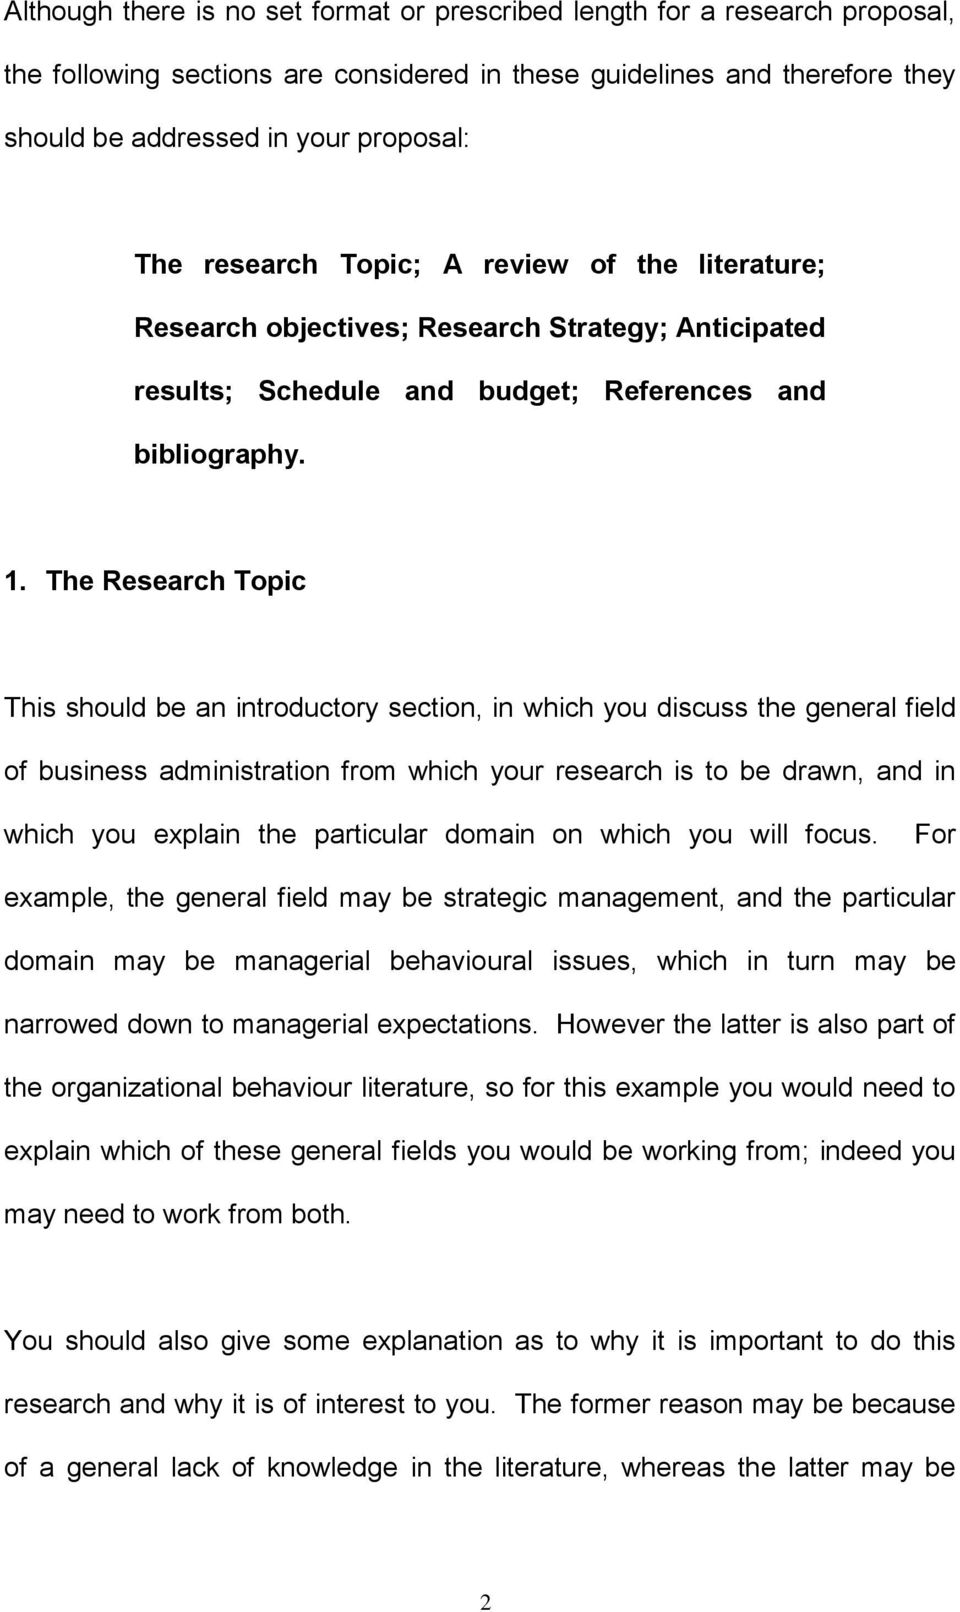 The Research Topic This should be an introductory section, in which you discuss the general field of business administration from which your research is to be drawn, and in which you explain the